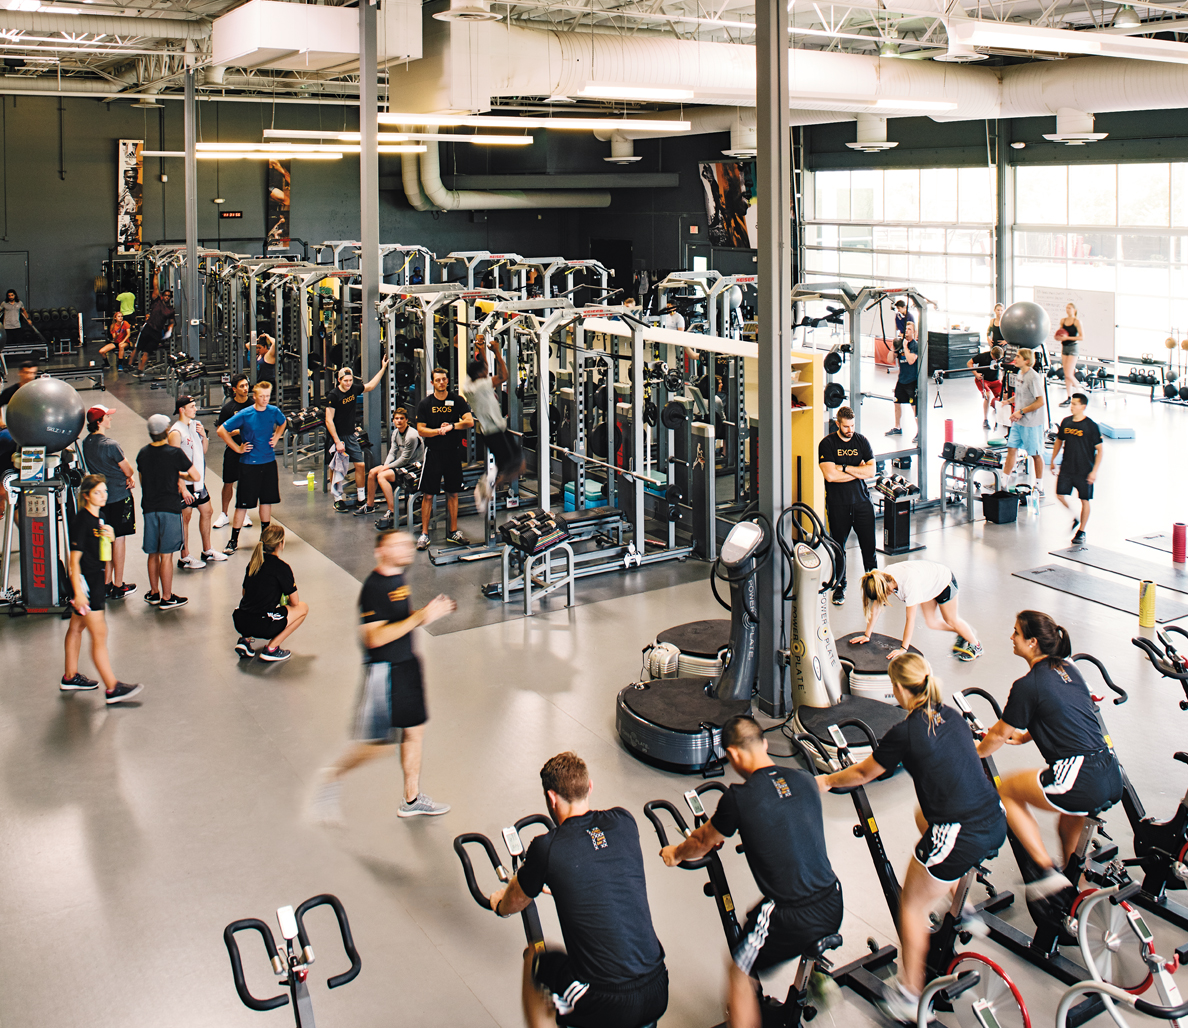 Inside Exos: An Exclusive Look at the Most Elite Gym in the World